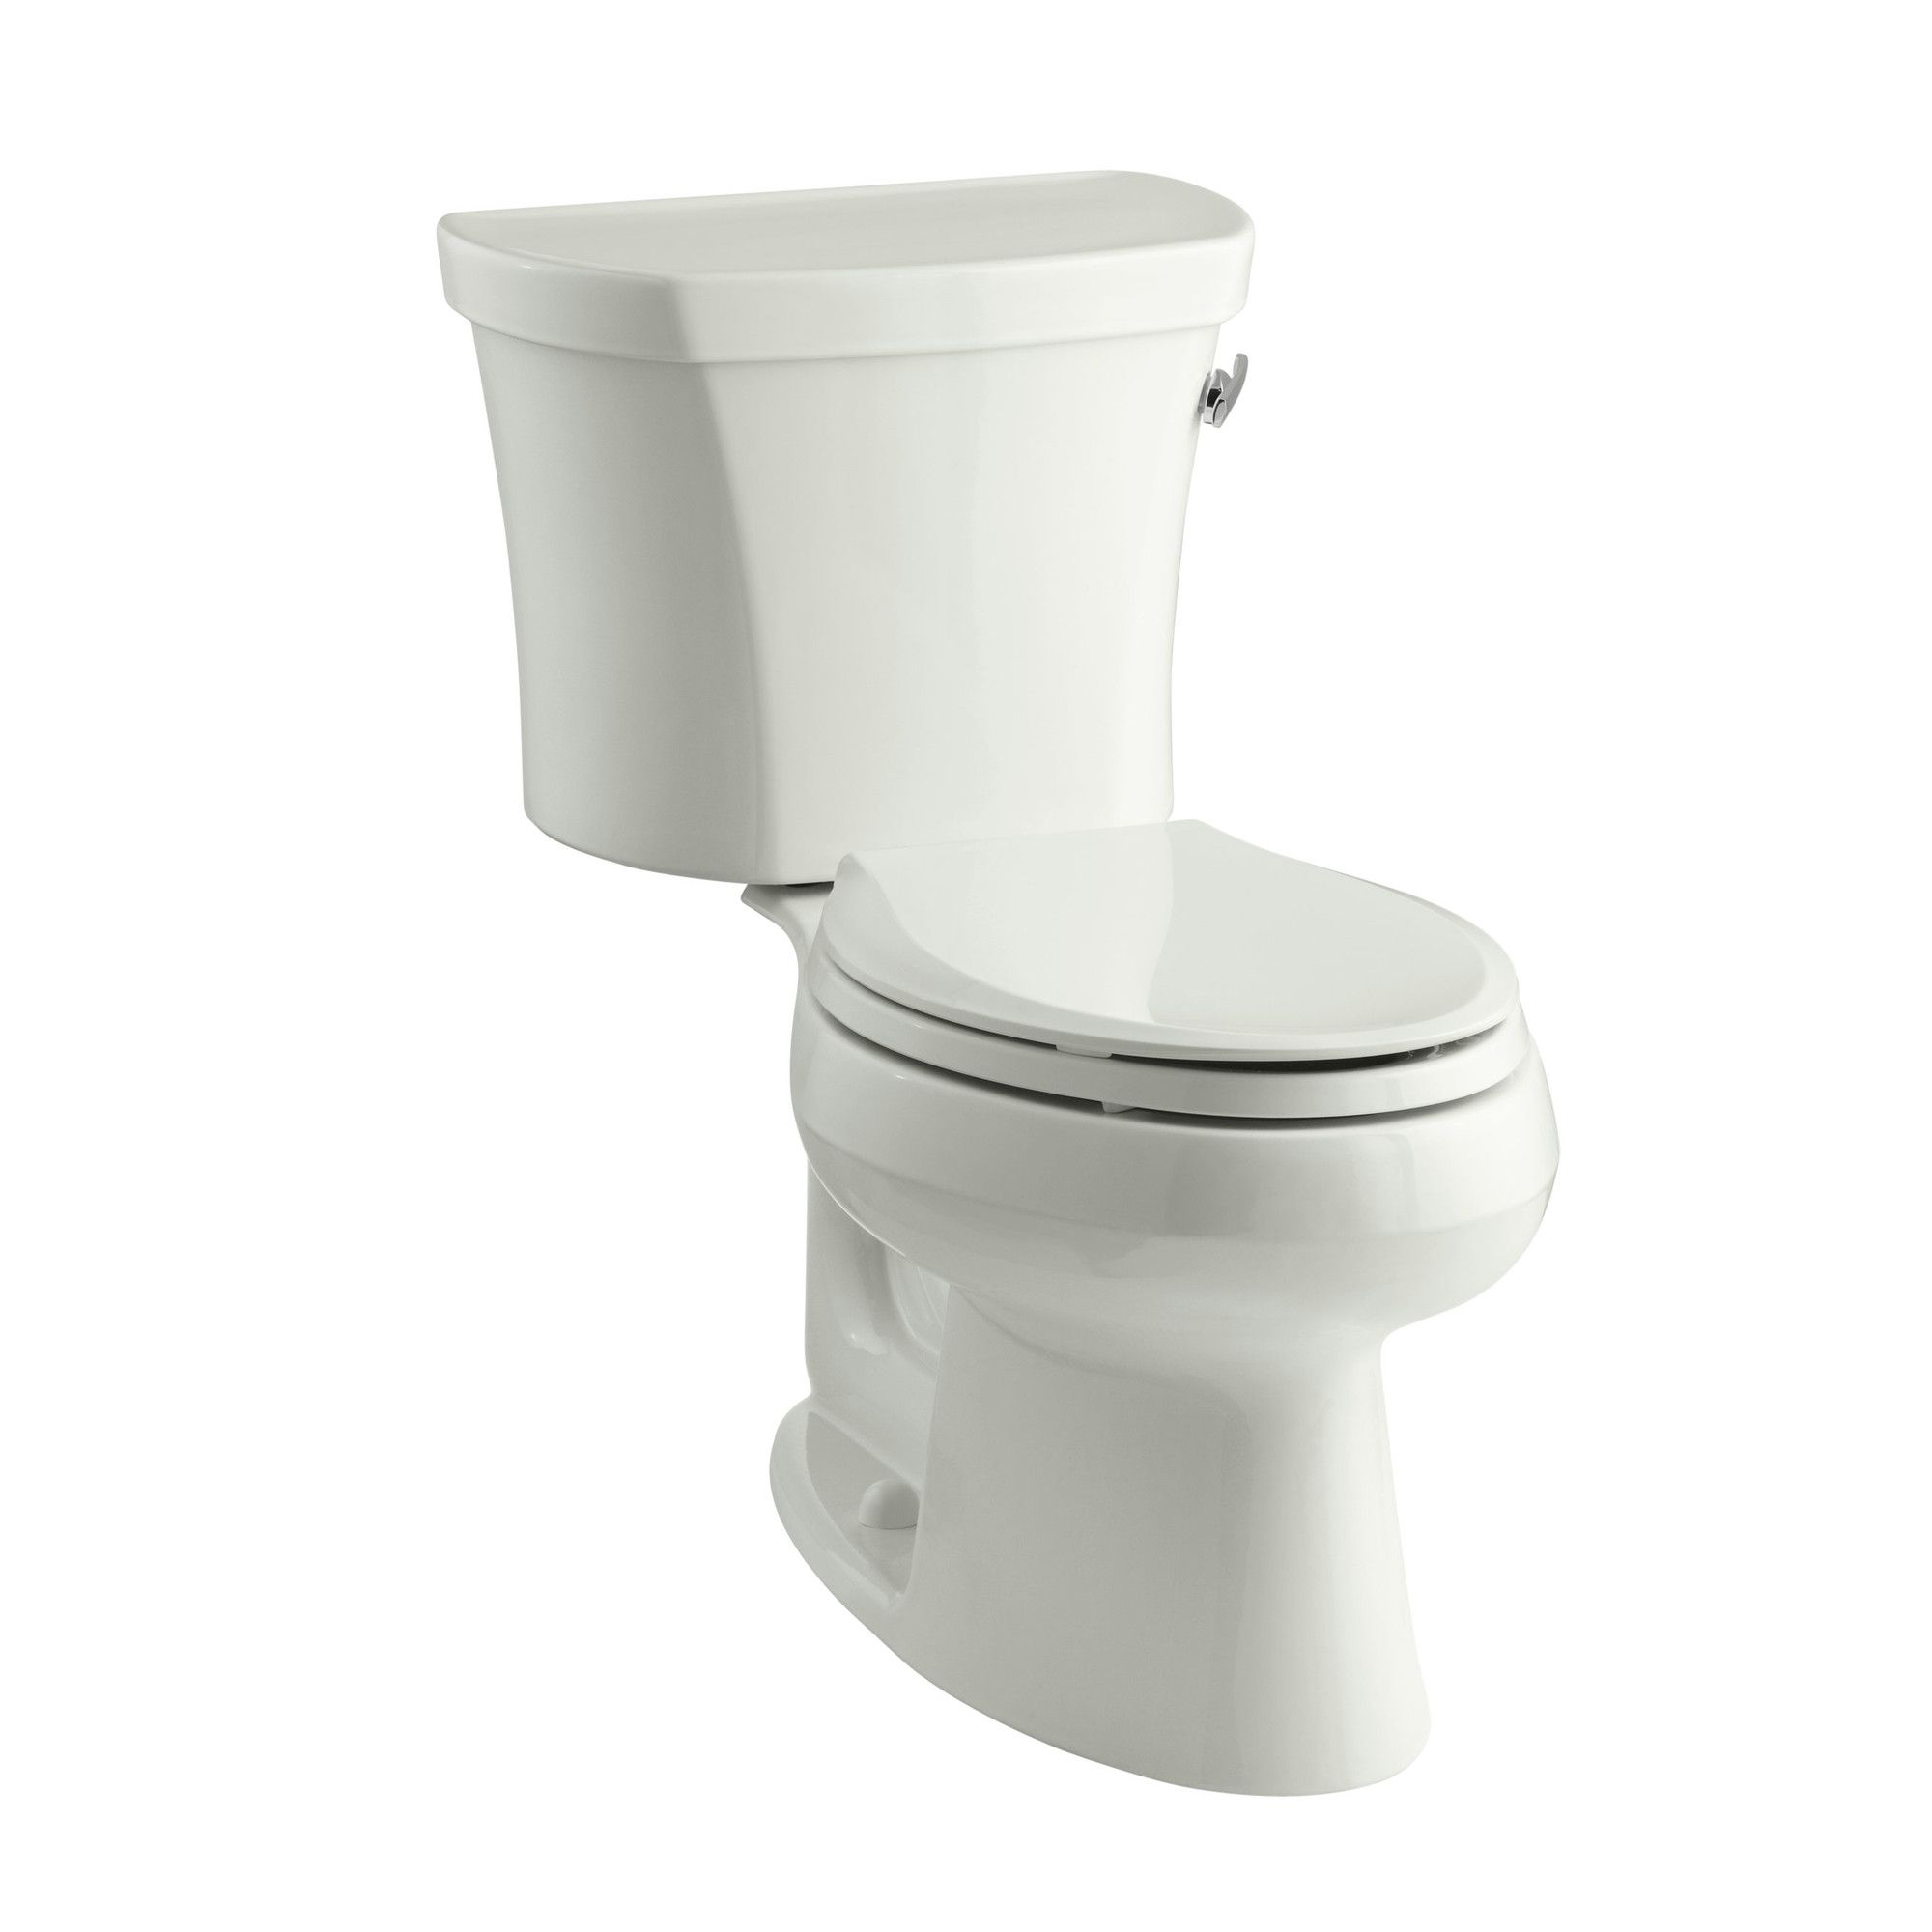 Wellworth Two-Piece Elongated 1.28 GPF Toilet with Class Five Flush Technology, Right-Hand Trip Lever and Insuliner Tank Liner